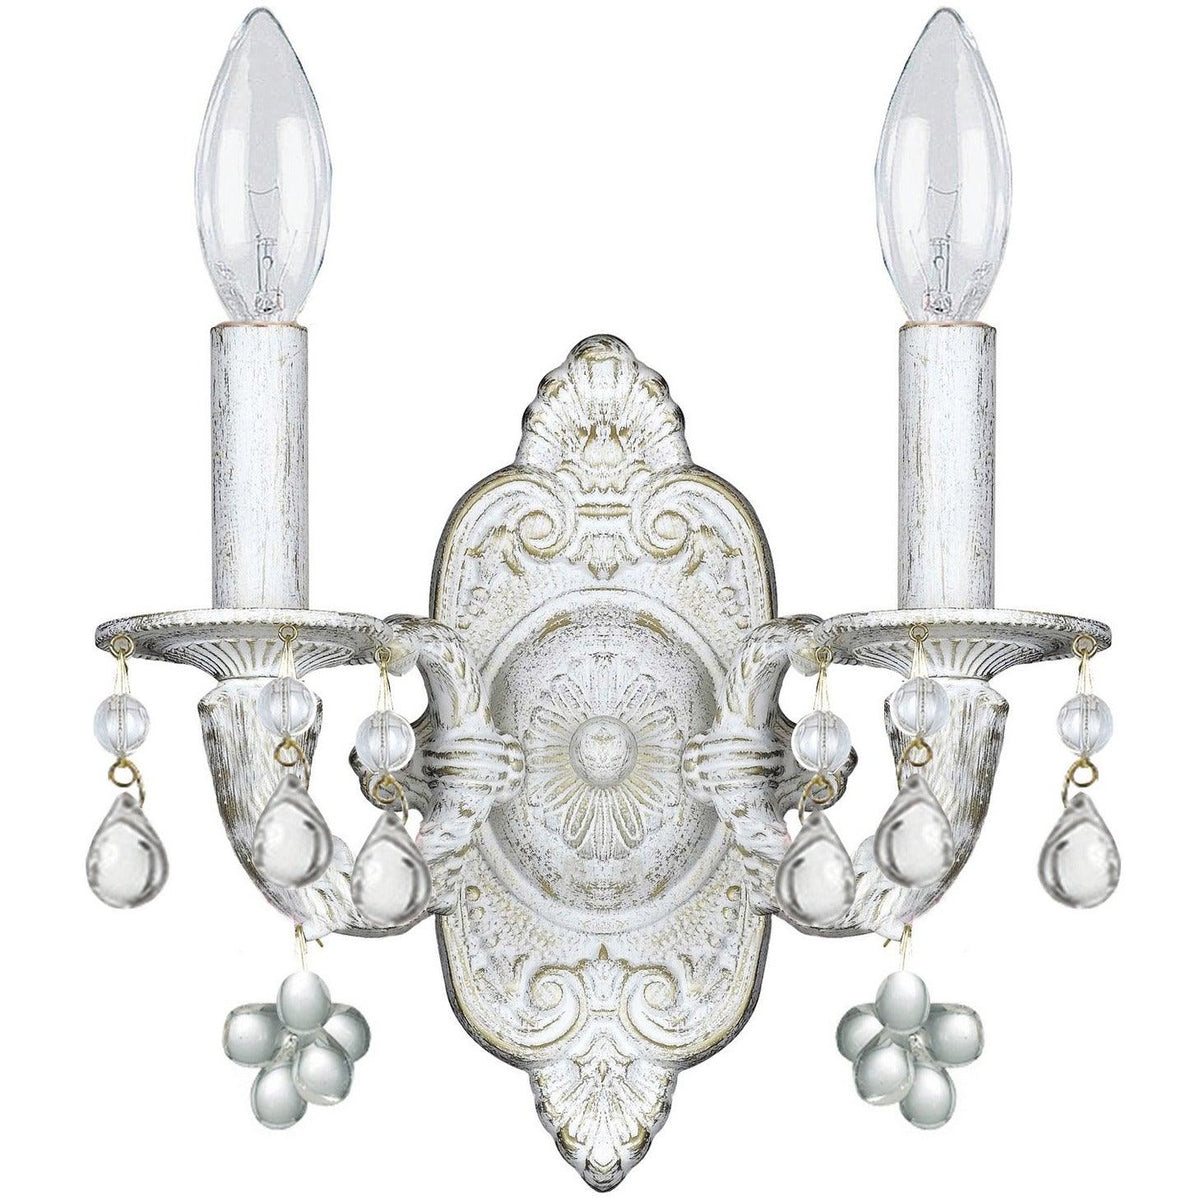 Crystorama - 5200-AW-CLEAR - Two Light Wall Mount - Paris Market - Antique White